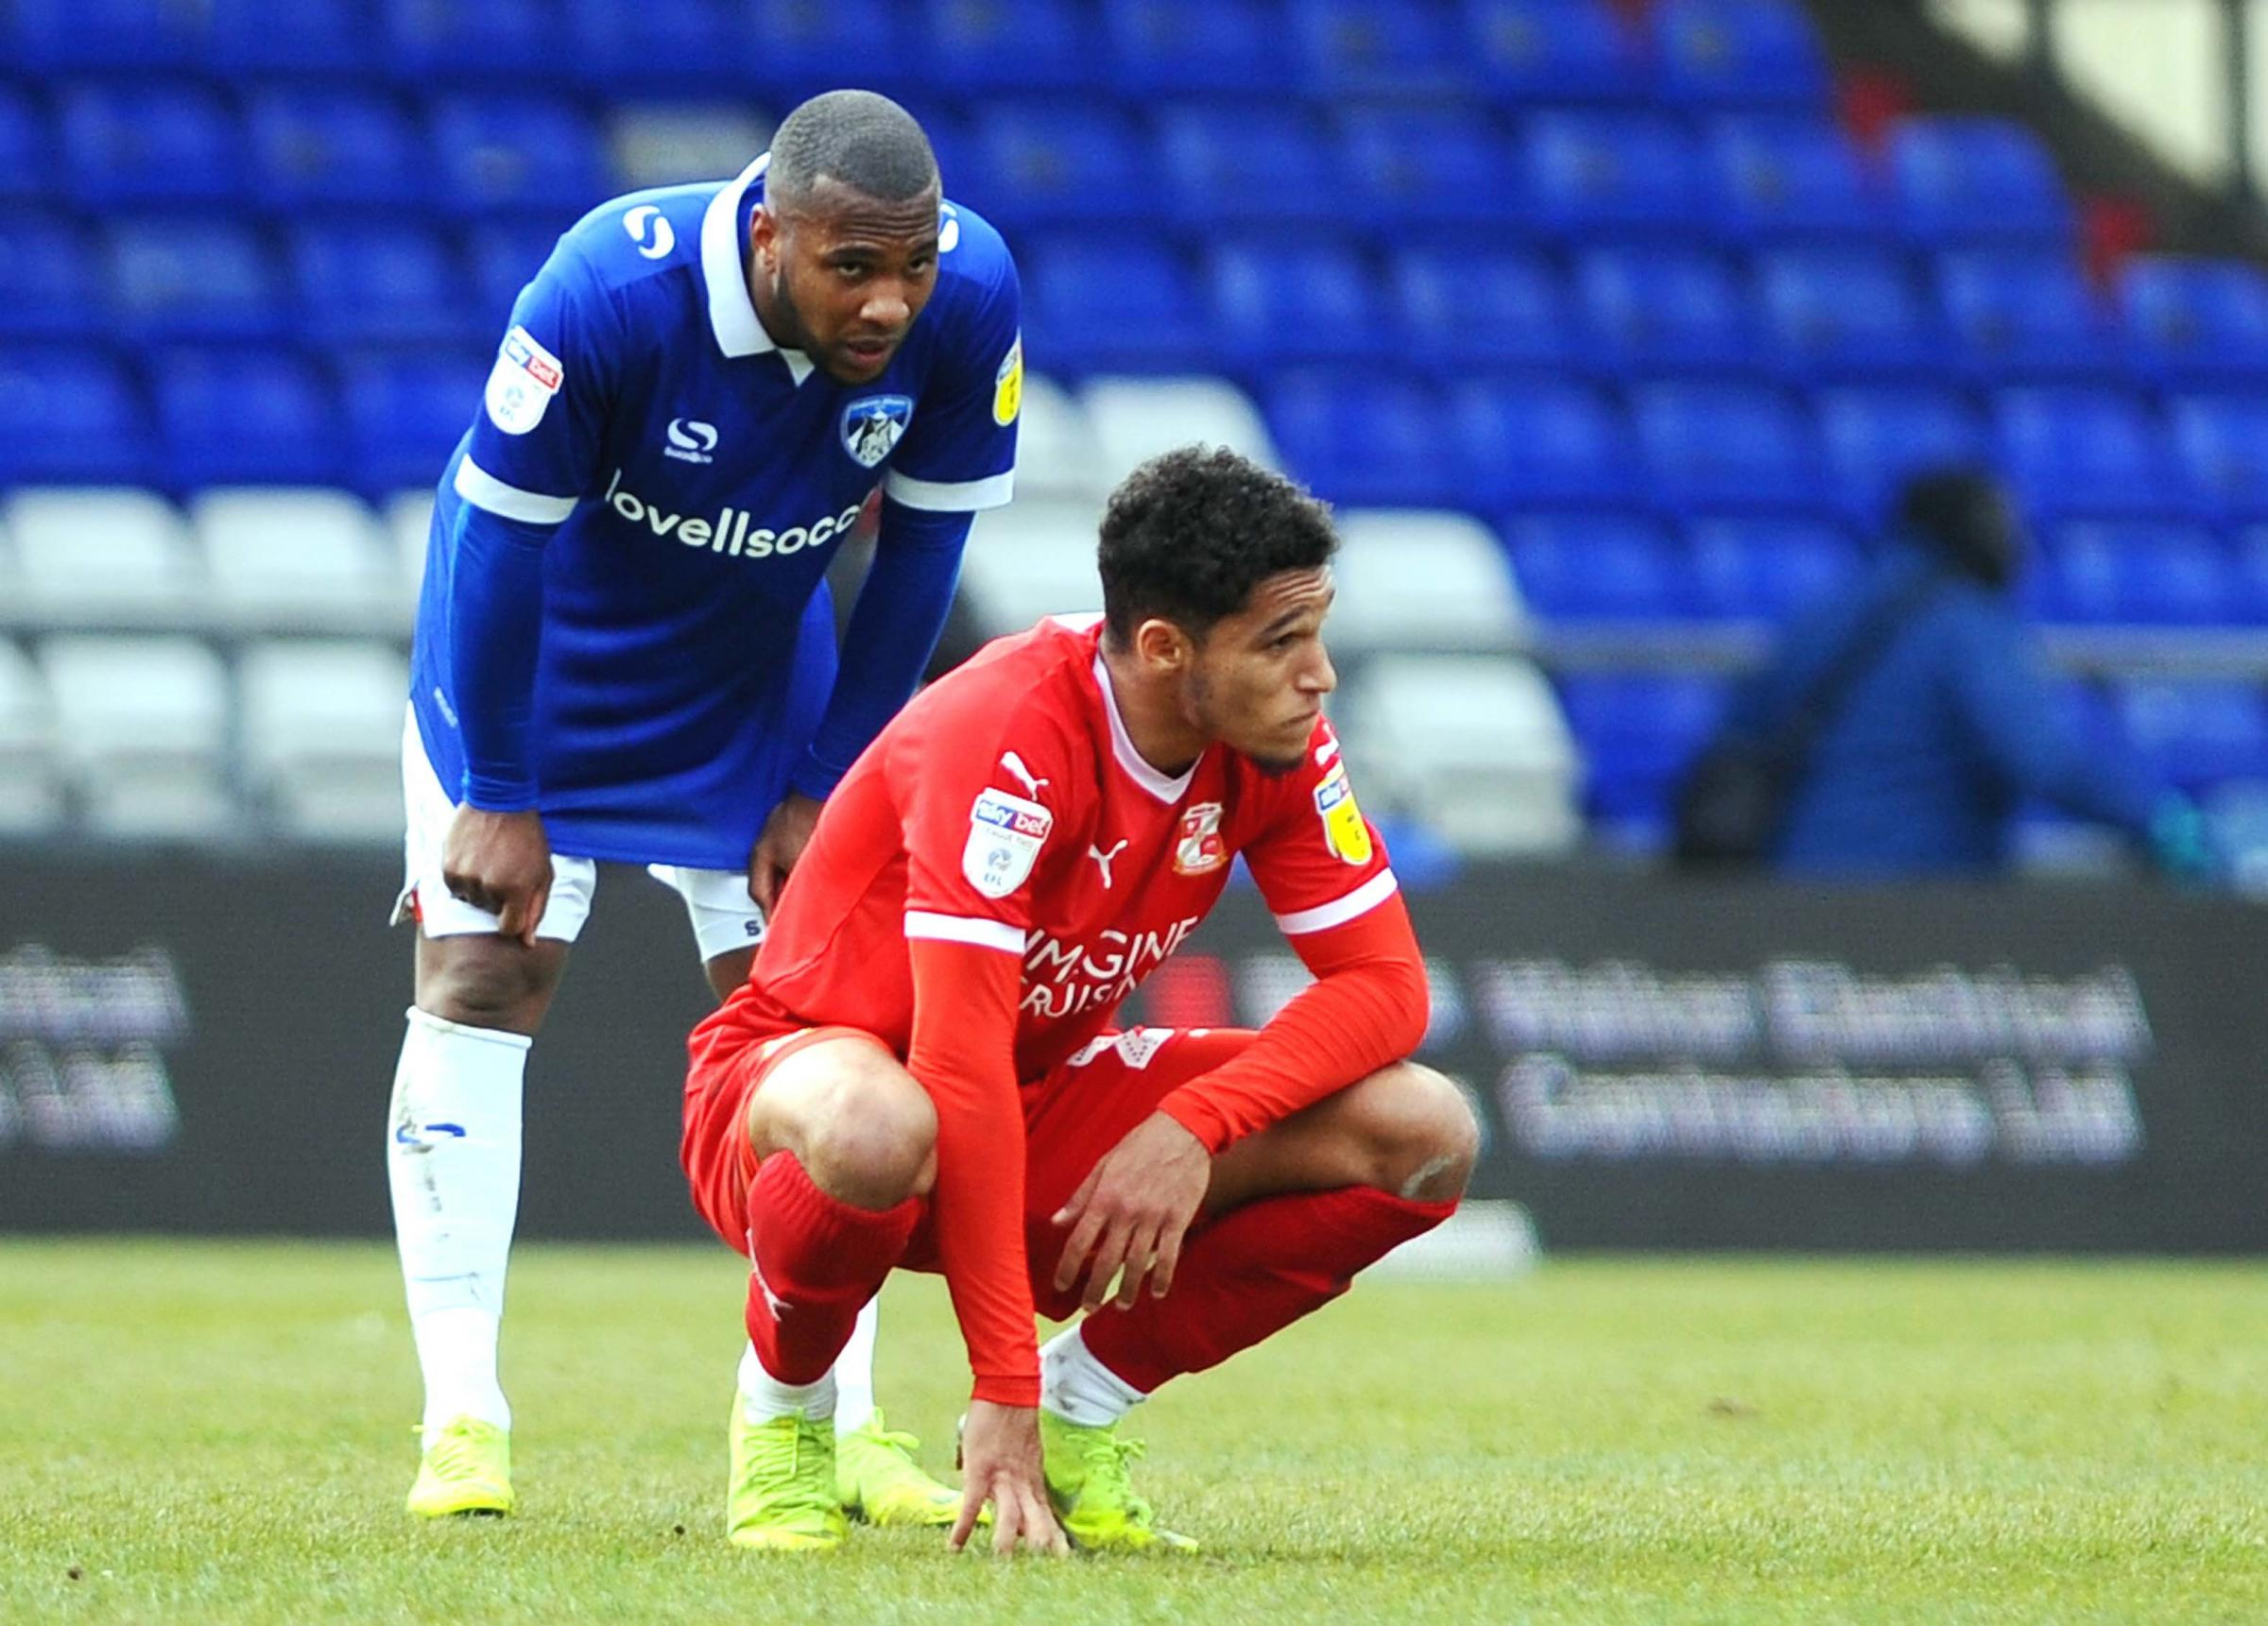 Swindon Town boss Richie Wellens concedes the League Two play-offs are likely to be beyond his side after draw at Oldham Athletic